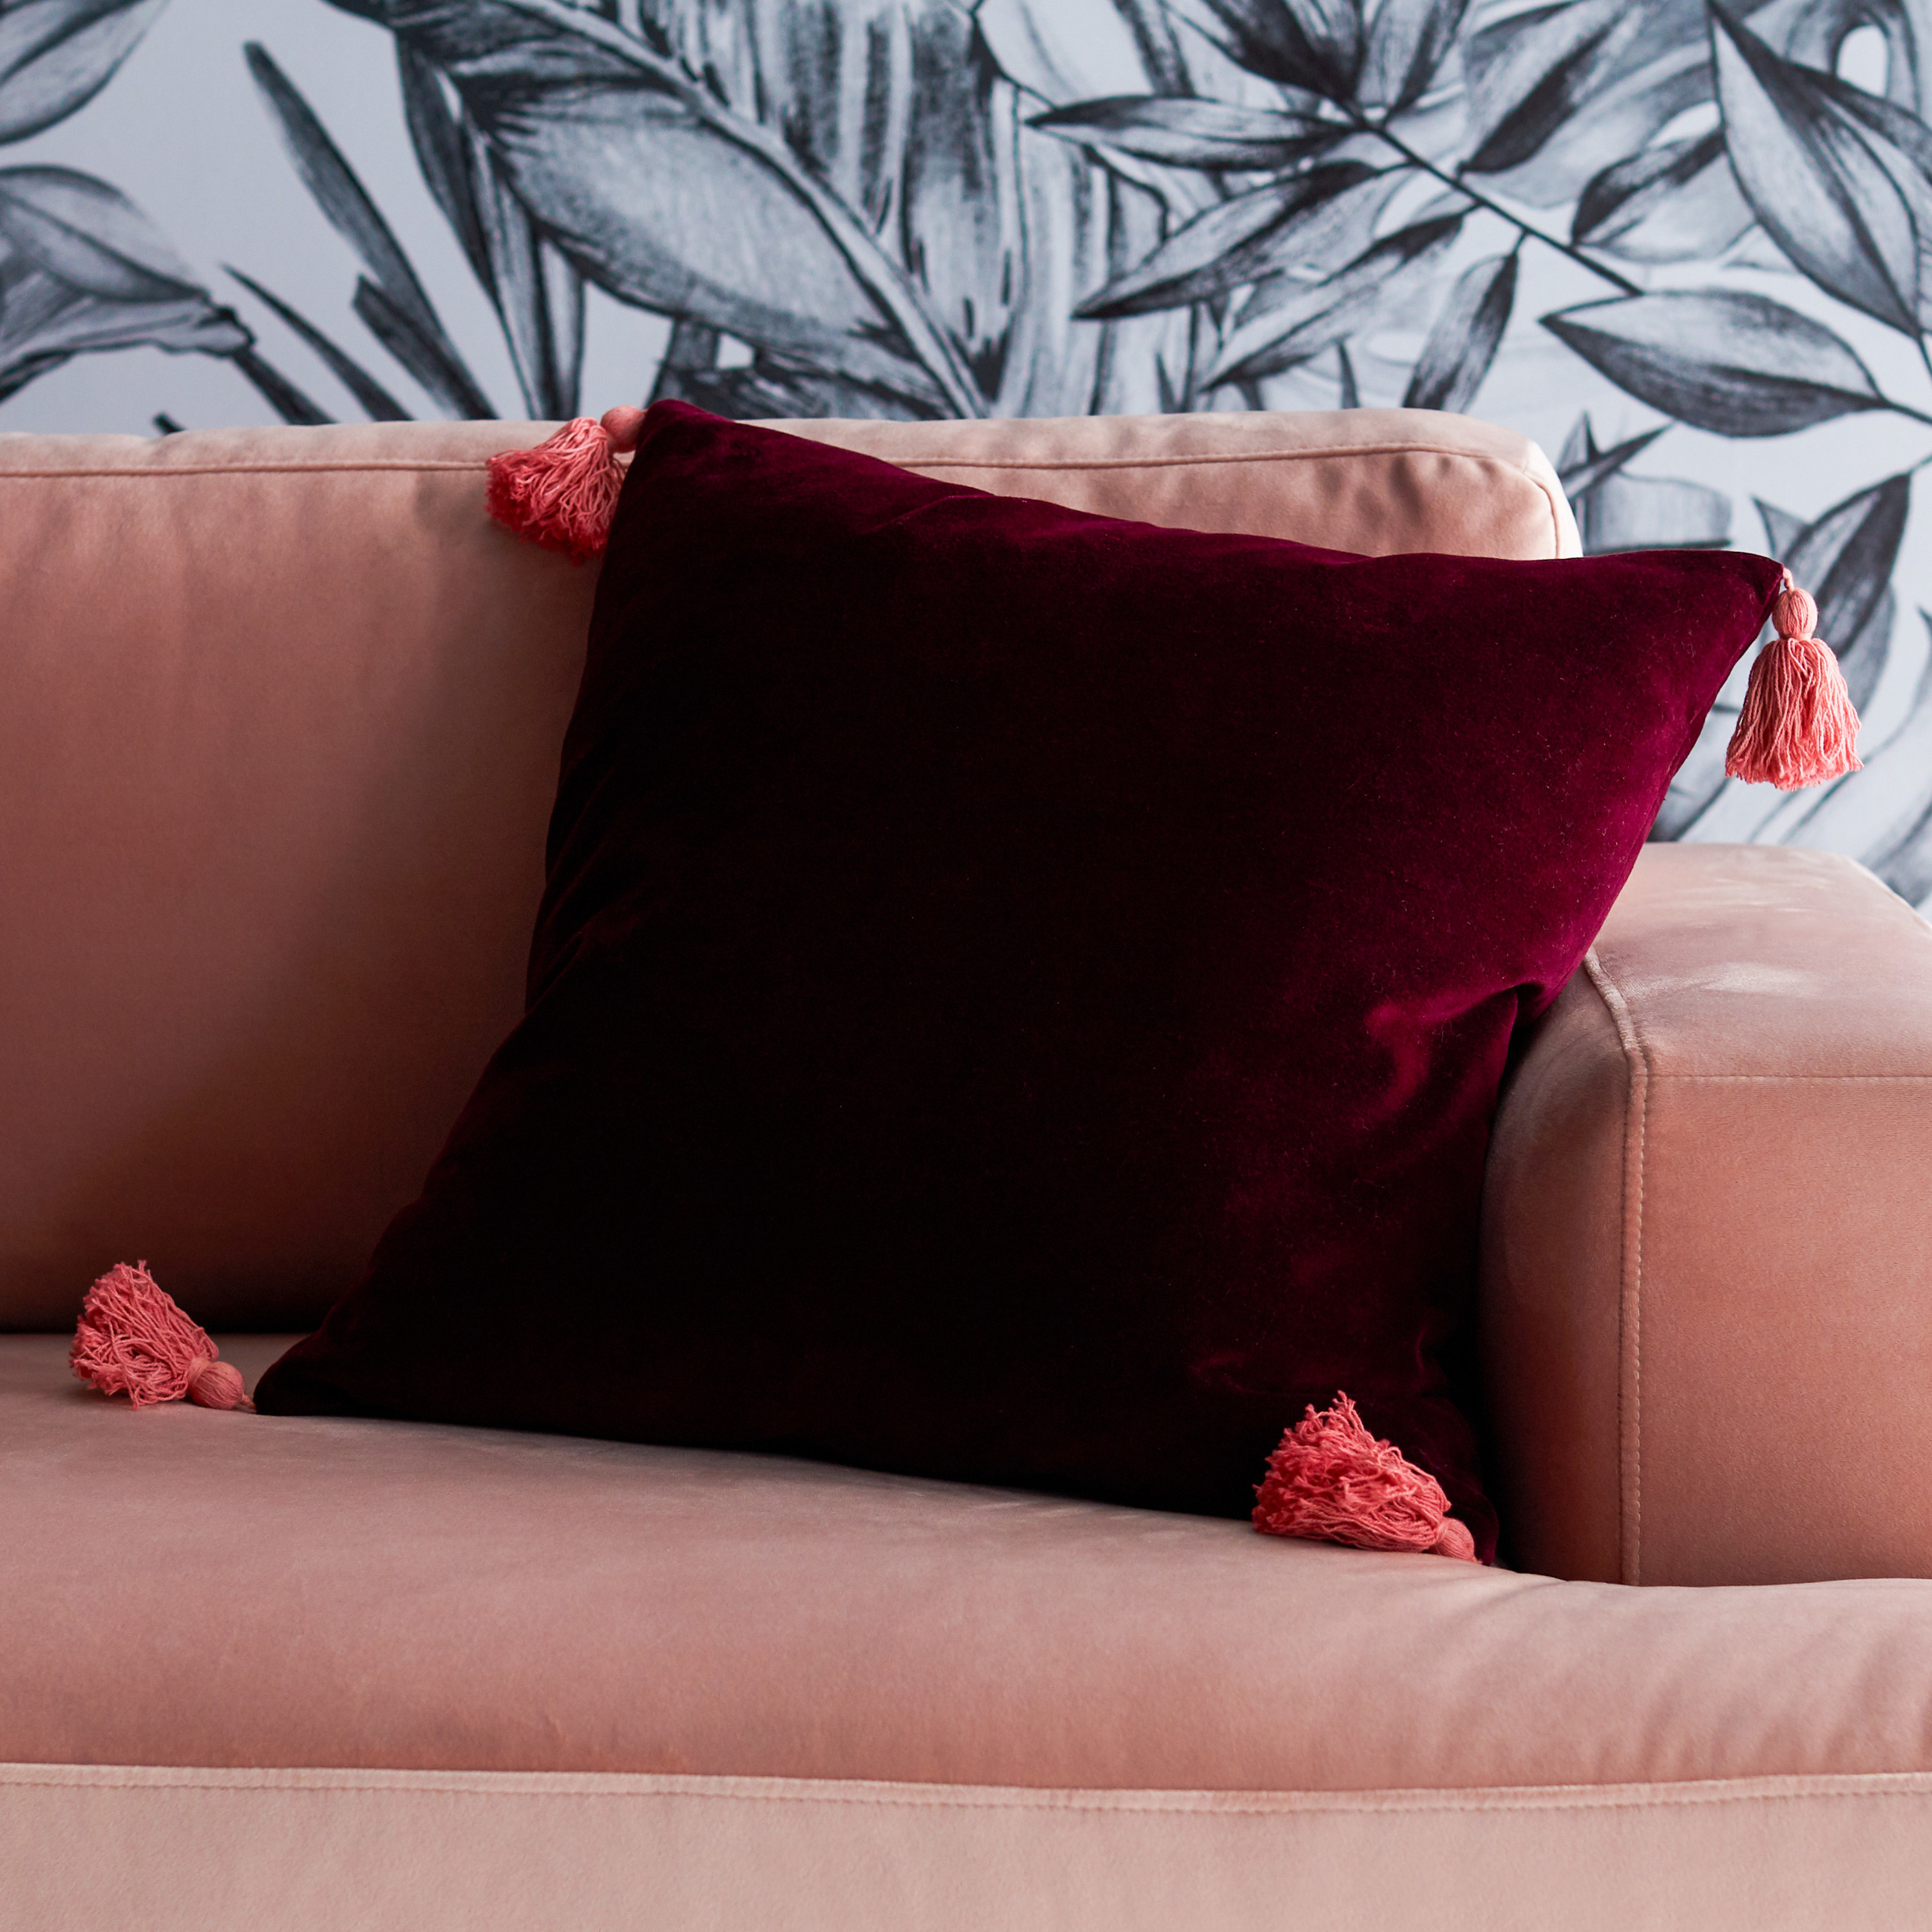 The red pillow on couch